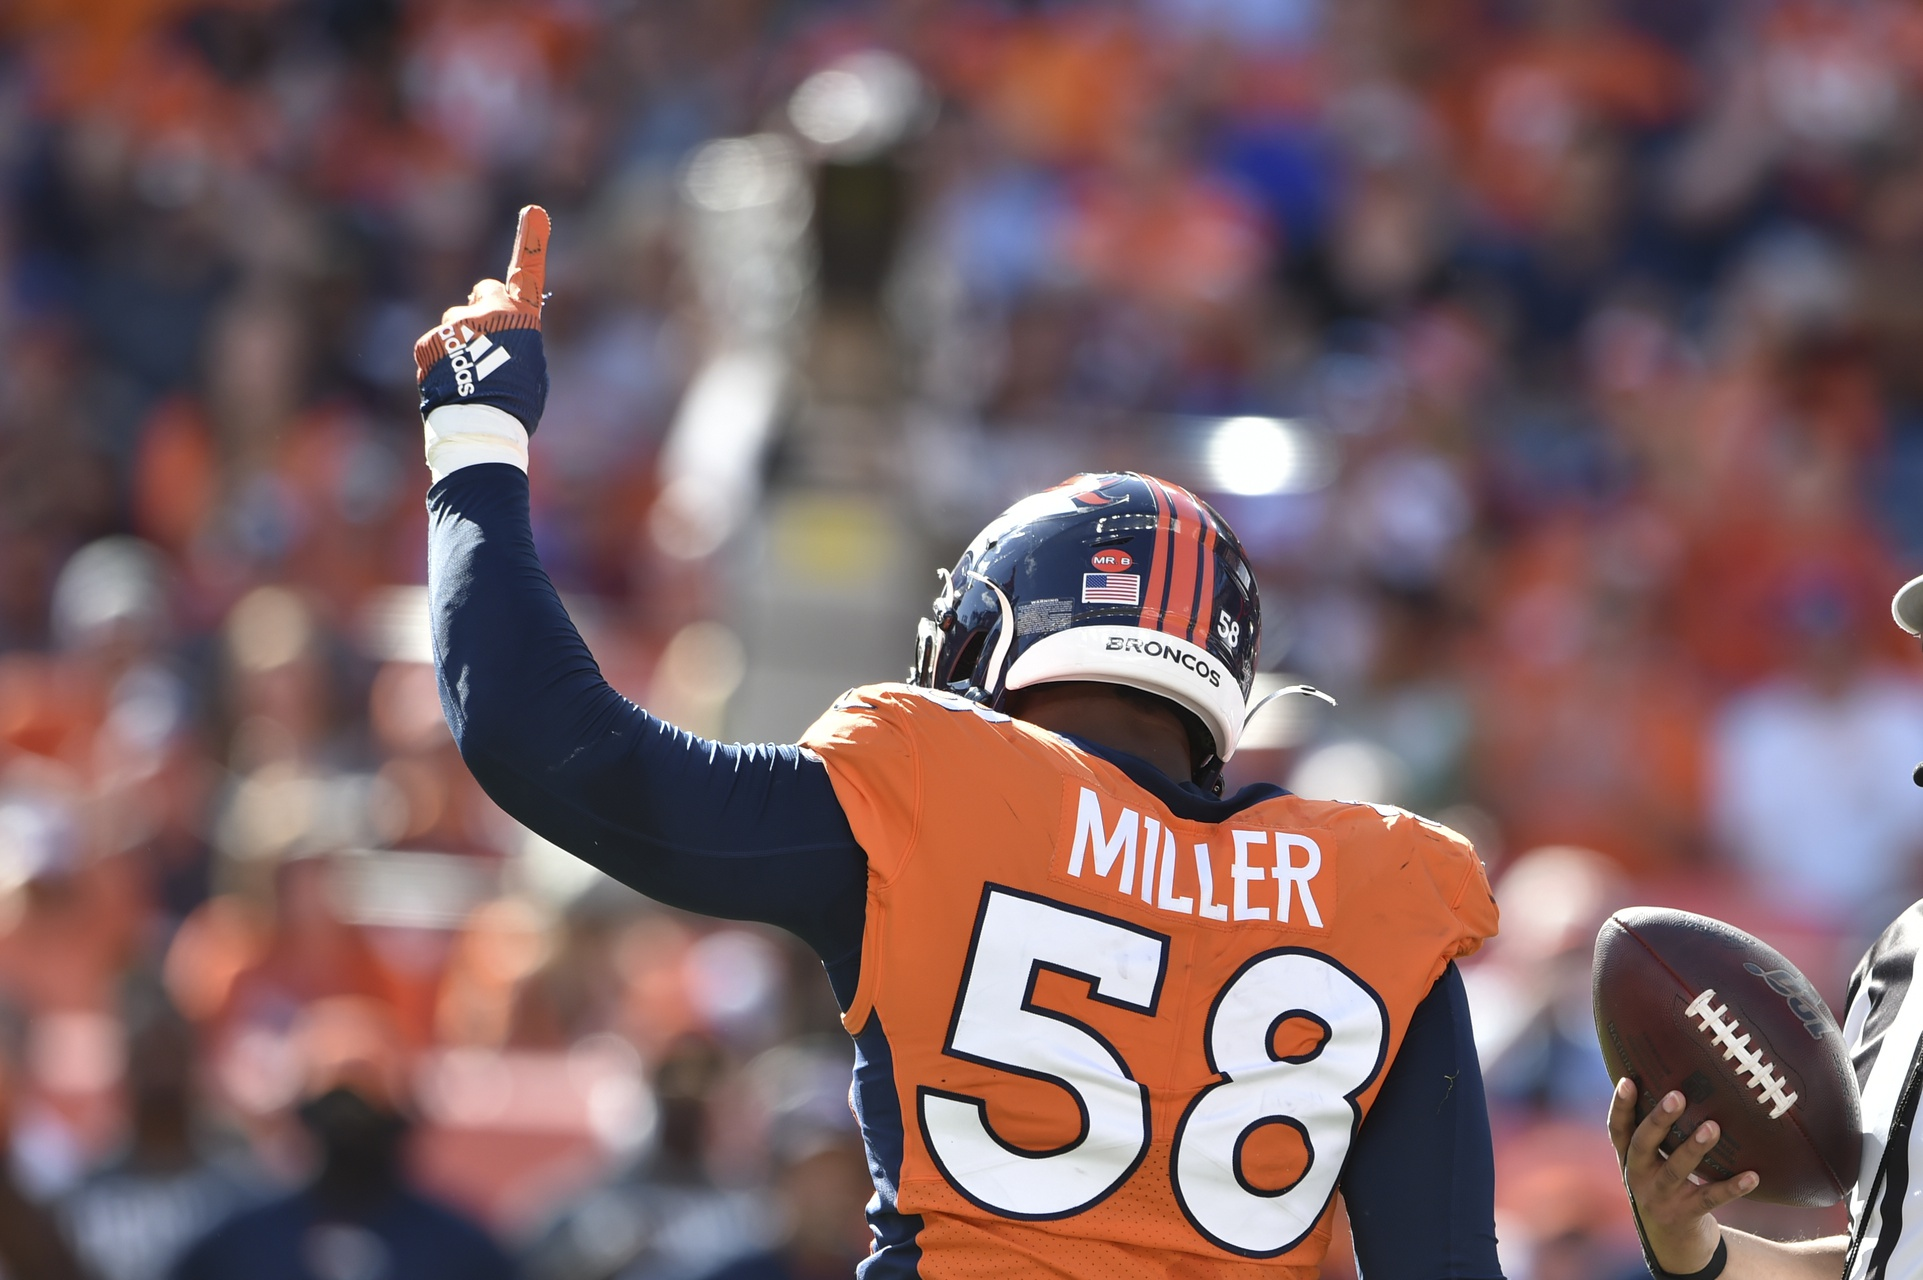 Broncos' LB Von Miller Named Unanimous Selection for NFL's All-Decade Team of 2010s